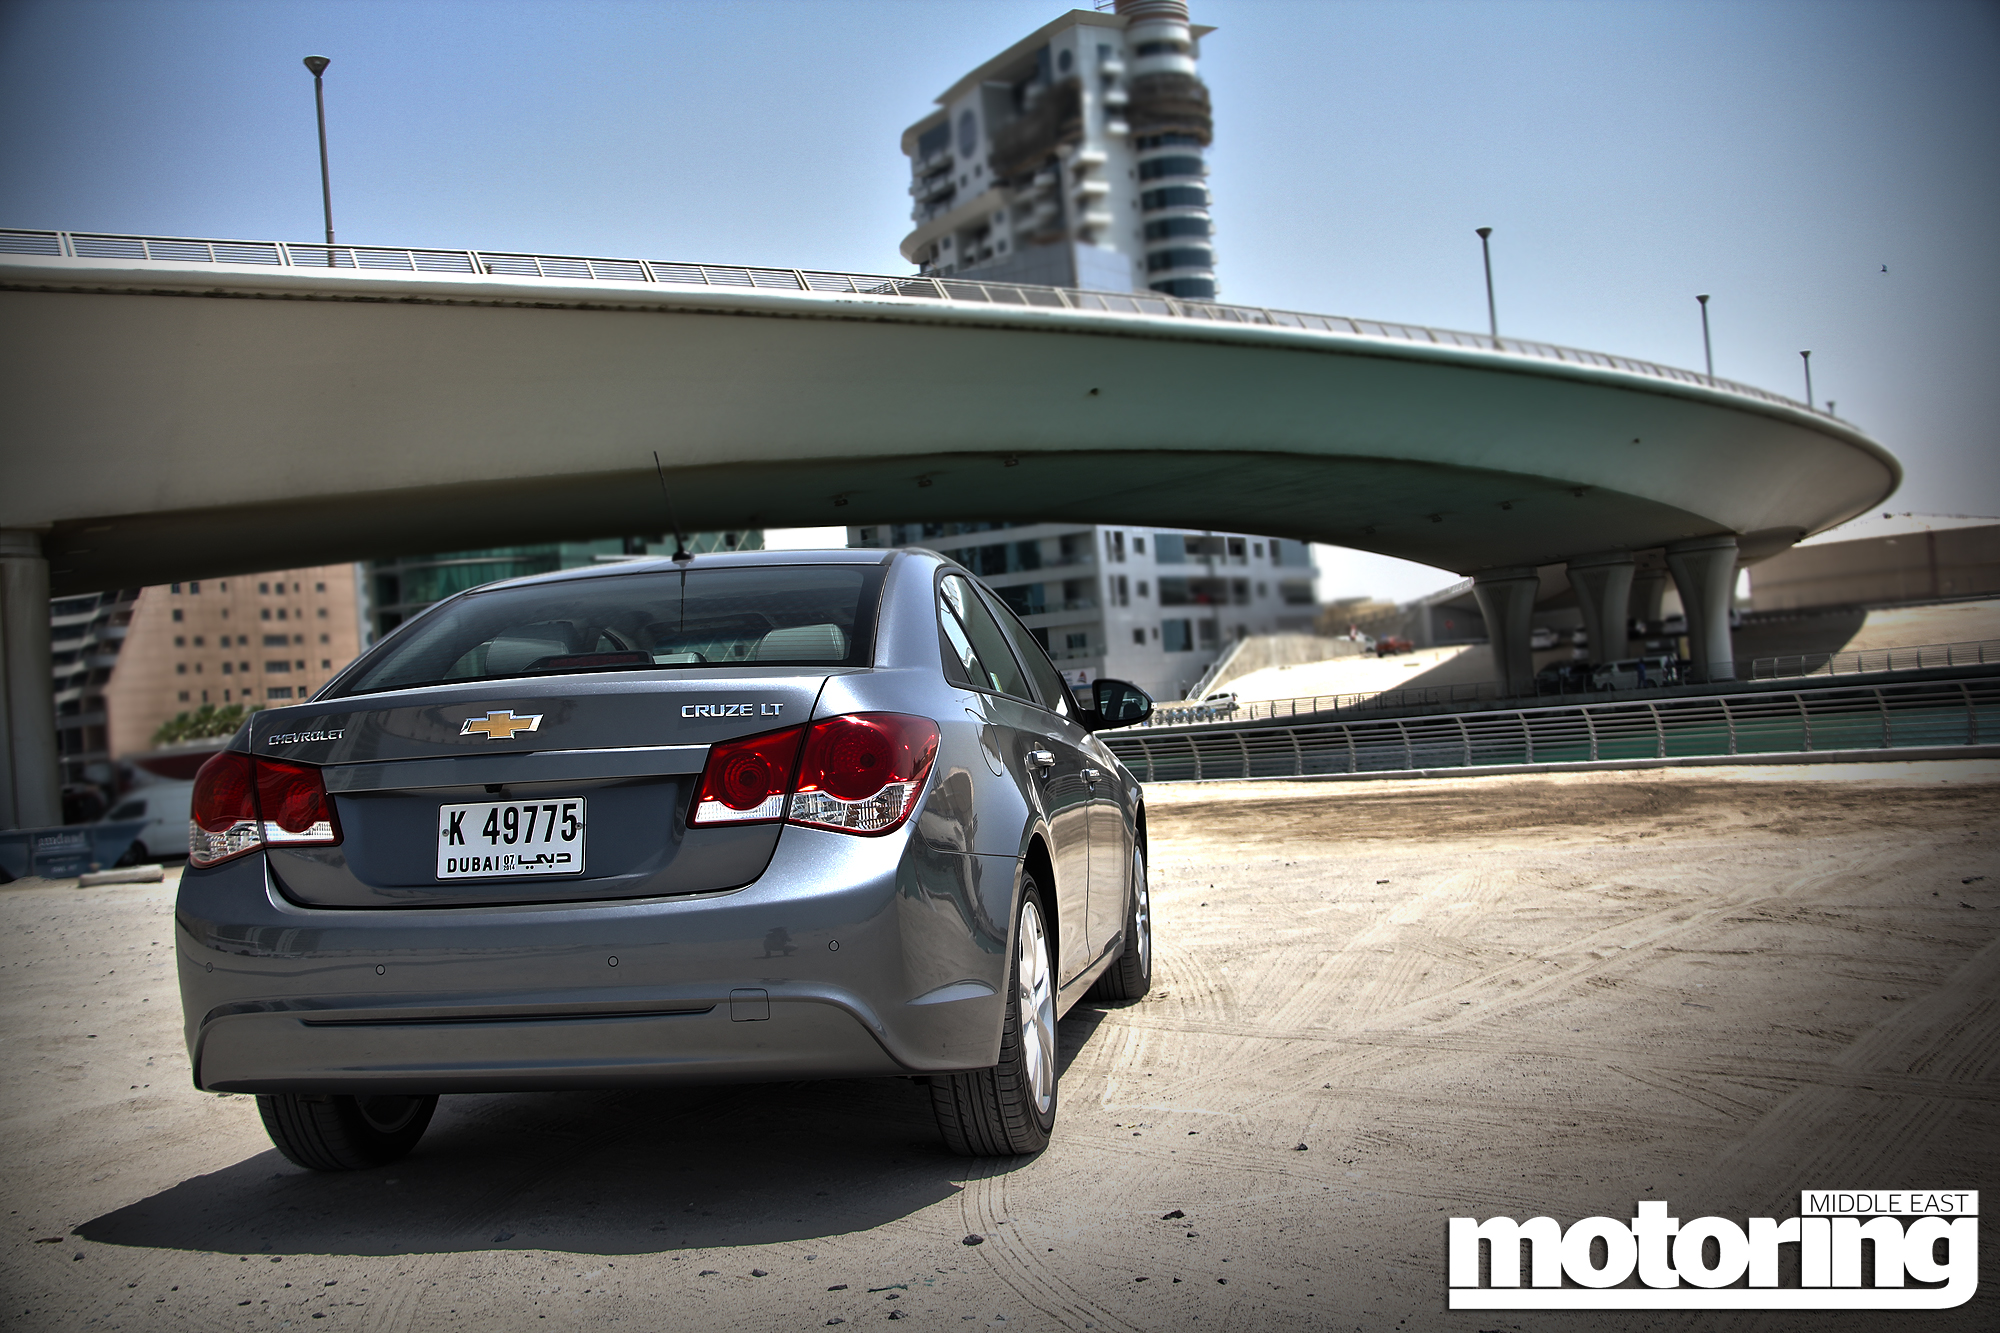 2013 Chevrolet Cruze Review - Motoring Middle East: Car news ...